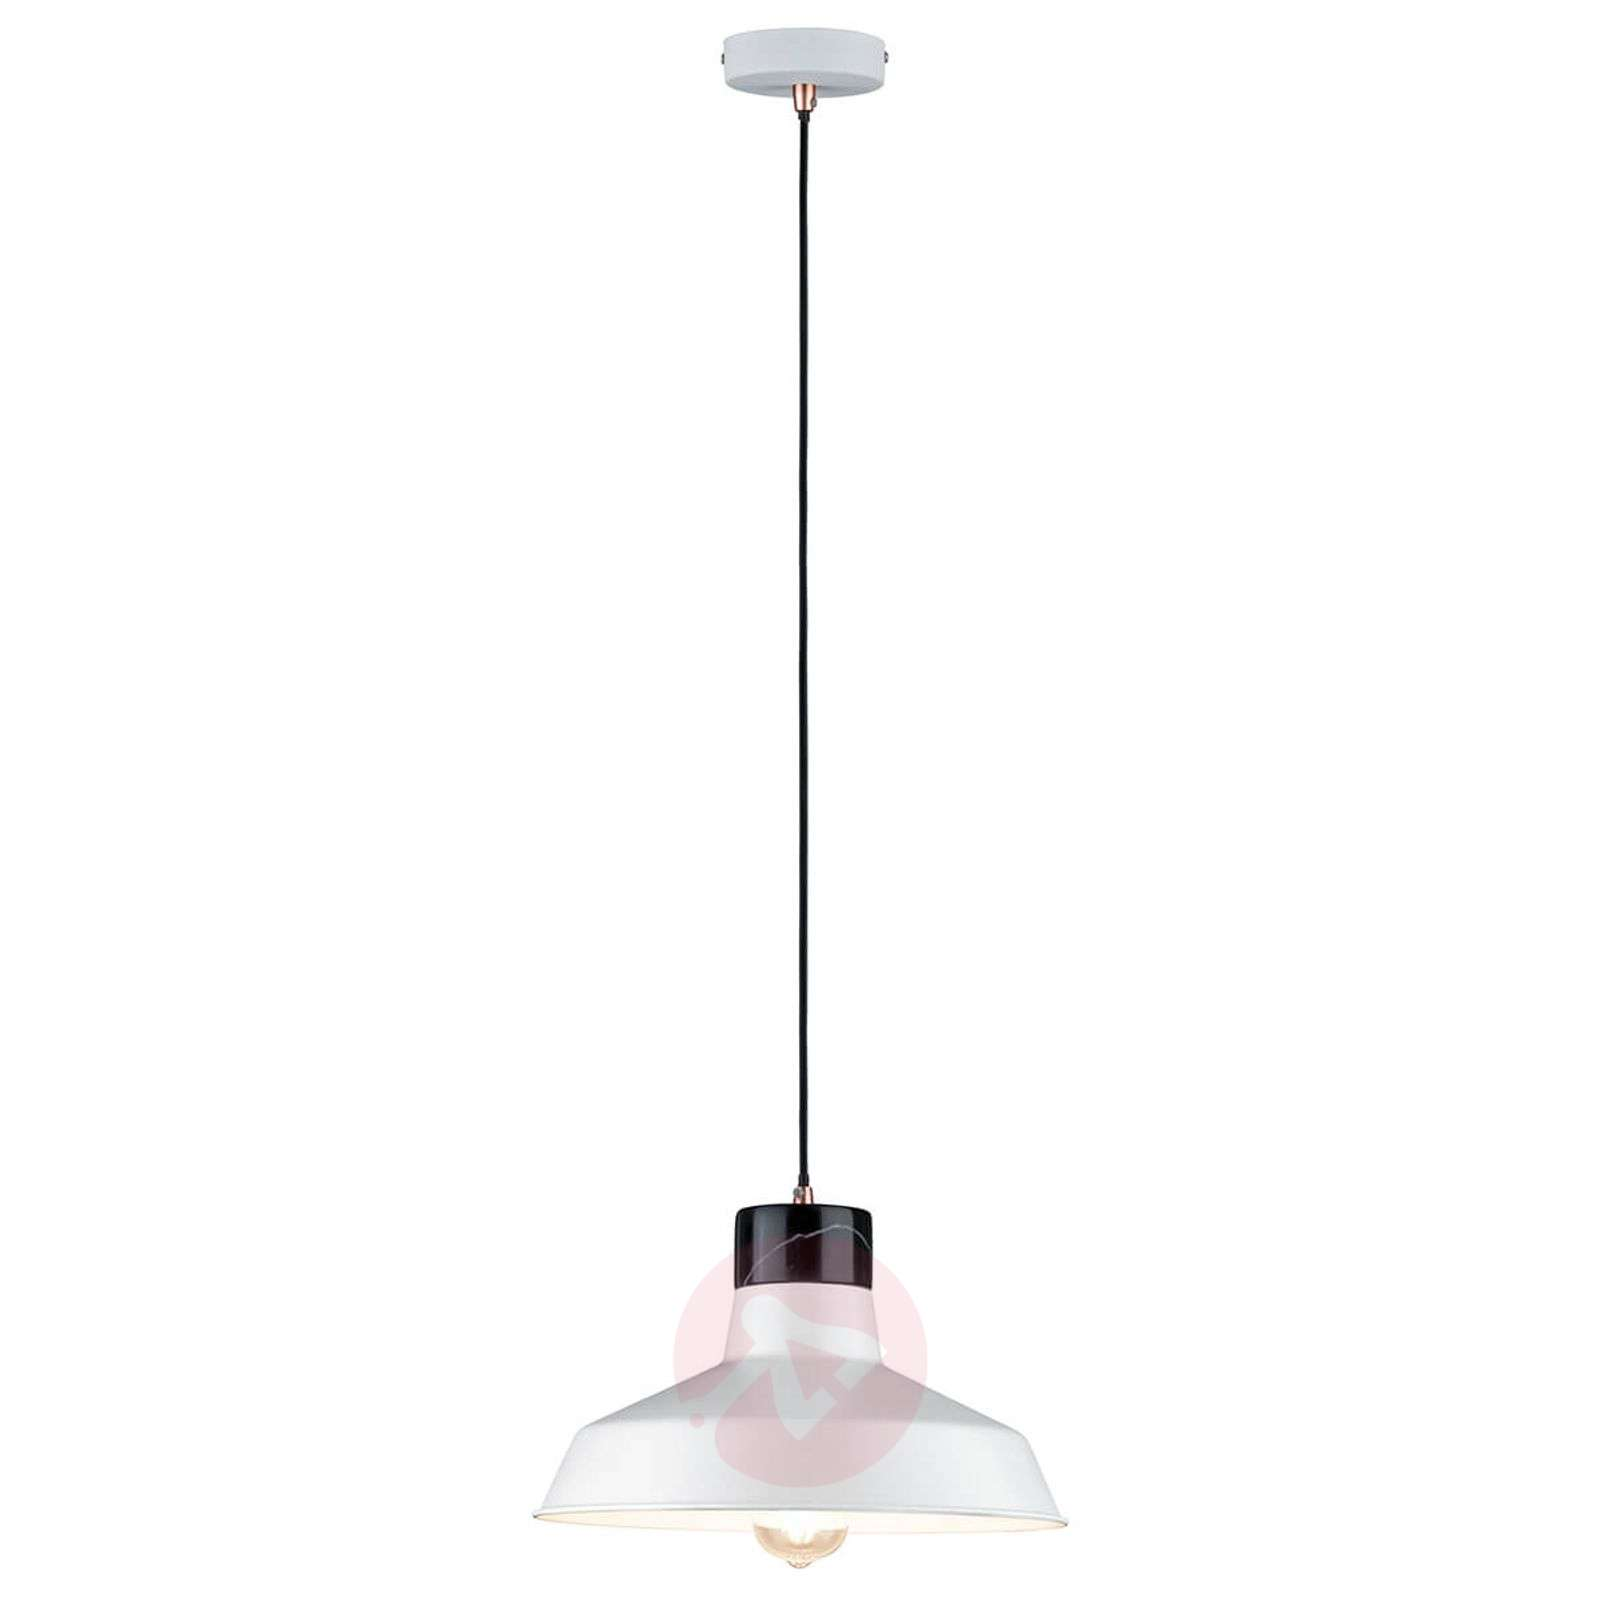 Style De Scandinave De Style Scandinave Disa Disa De Disa Suspension Suspension Suspension SUMVqzp